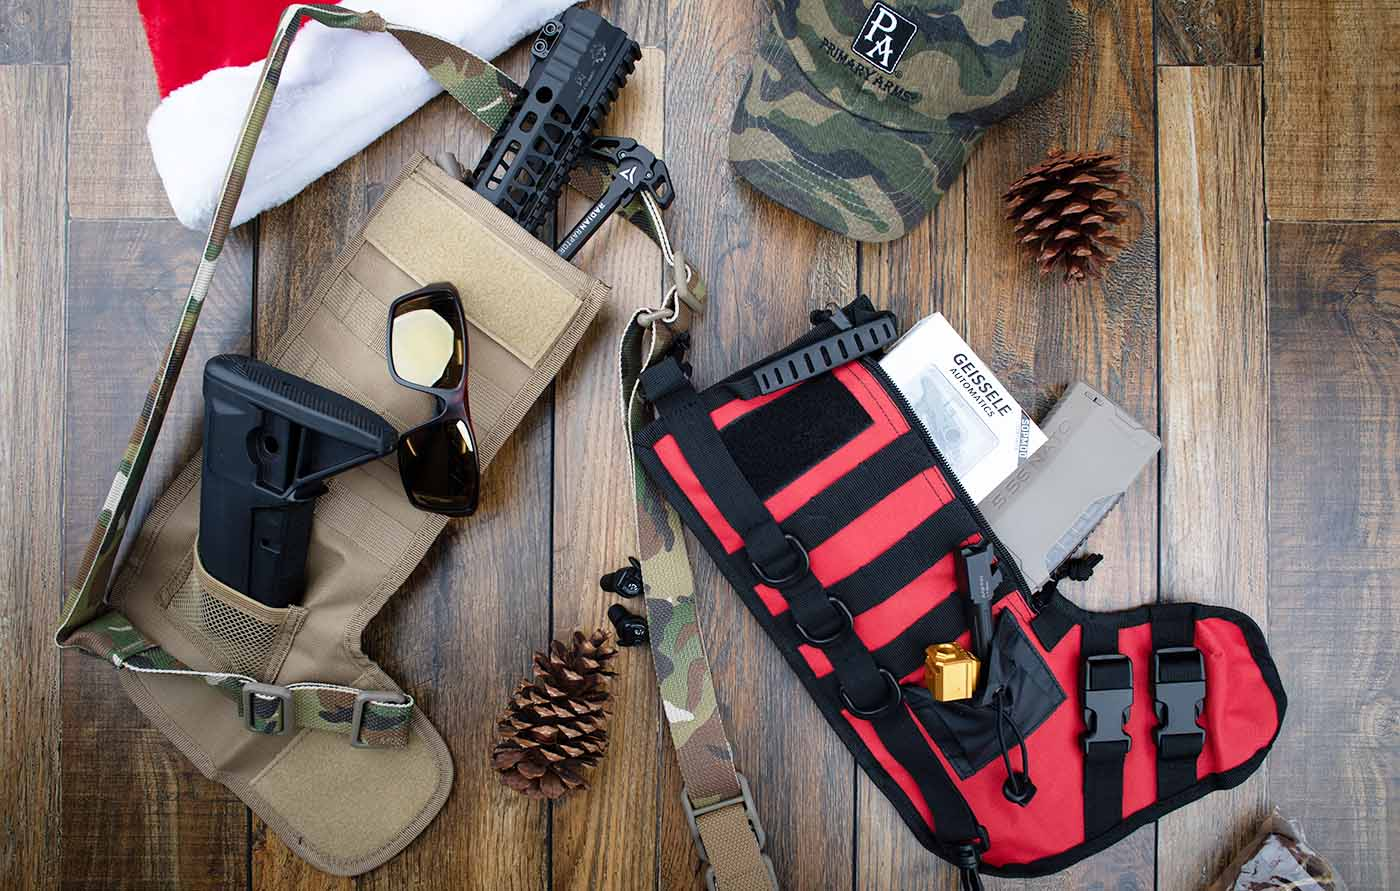 Tactical Christmas Stocking Stuffed.Tactical Stocking Stuffers 2018 Holiday Guide The Pa Blog